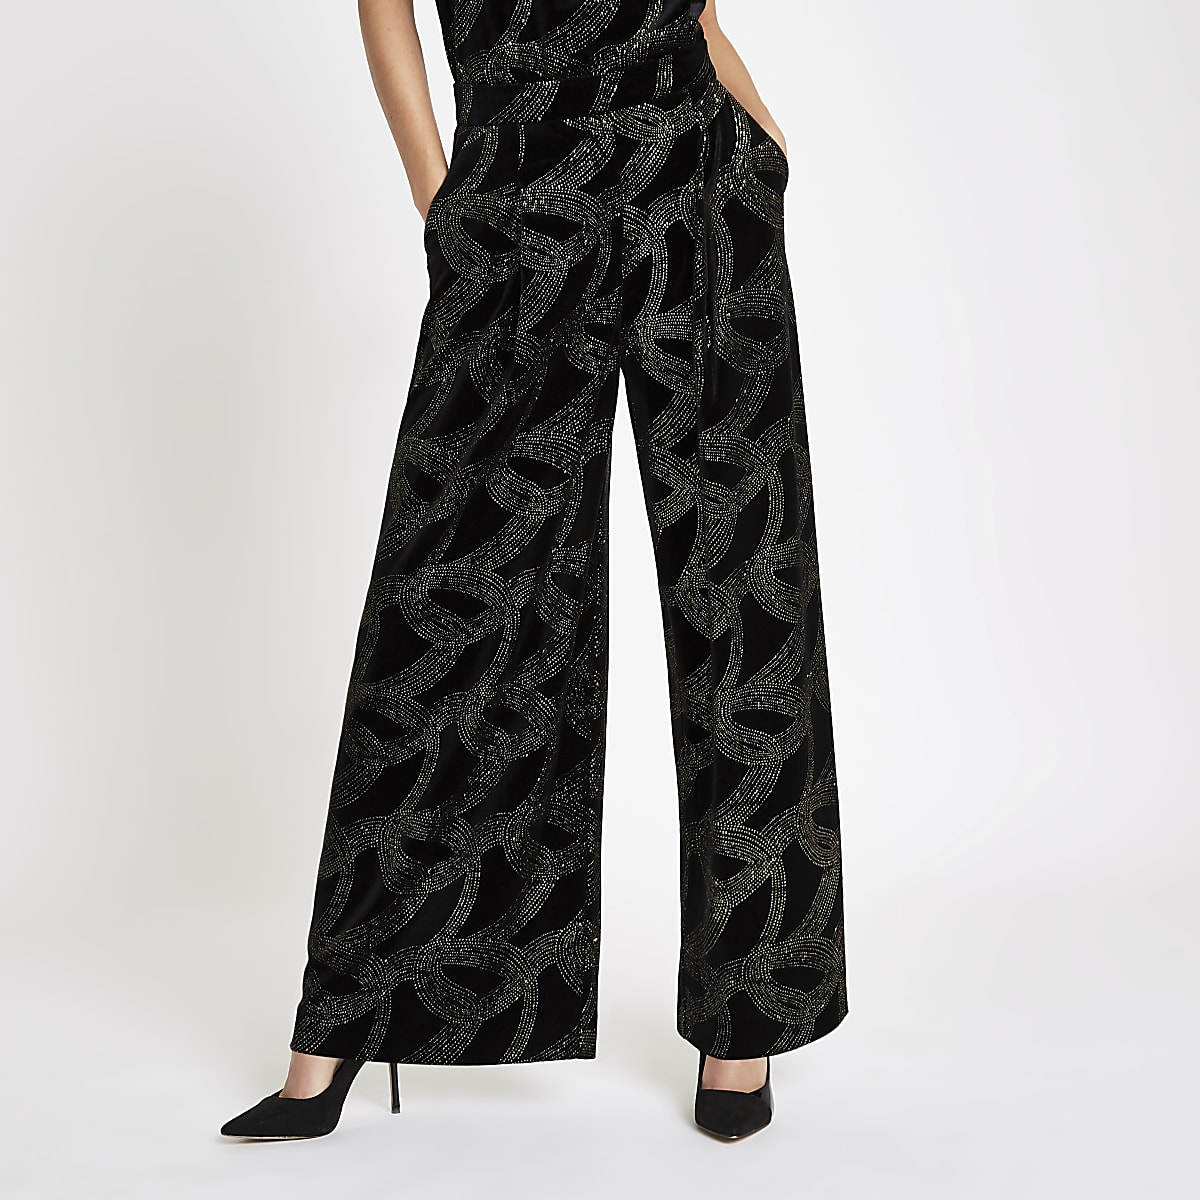 Black glitter embellished wide leg trousers